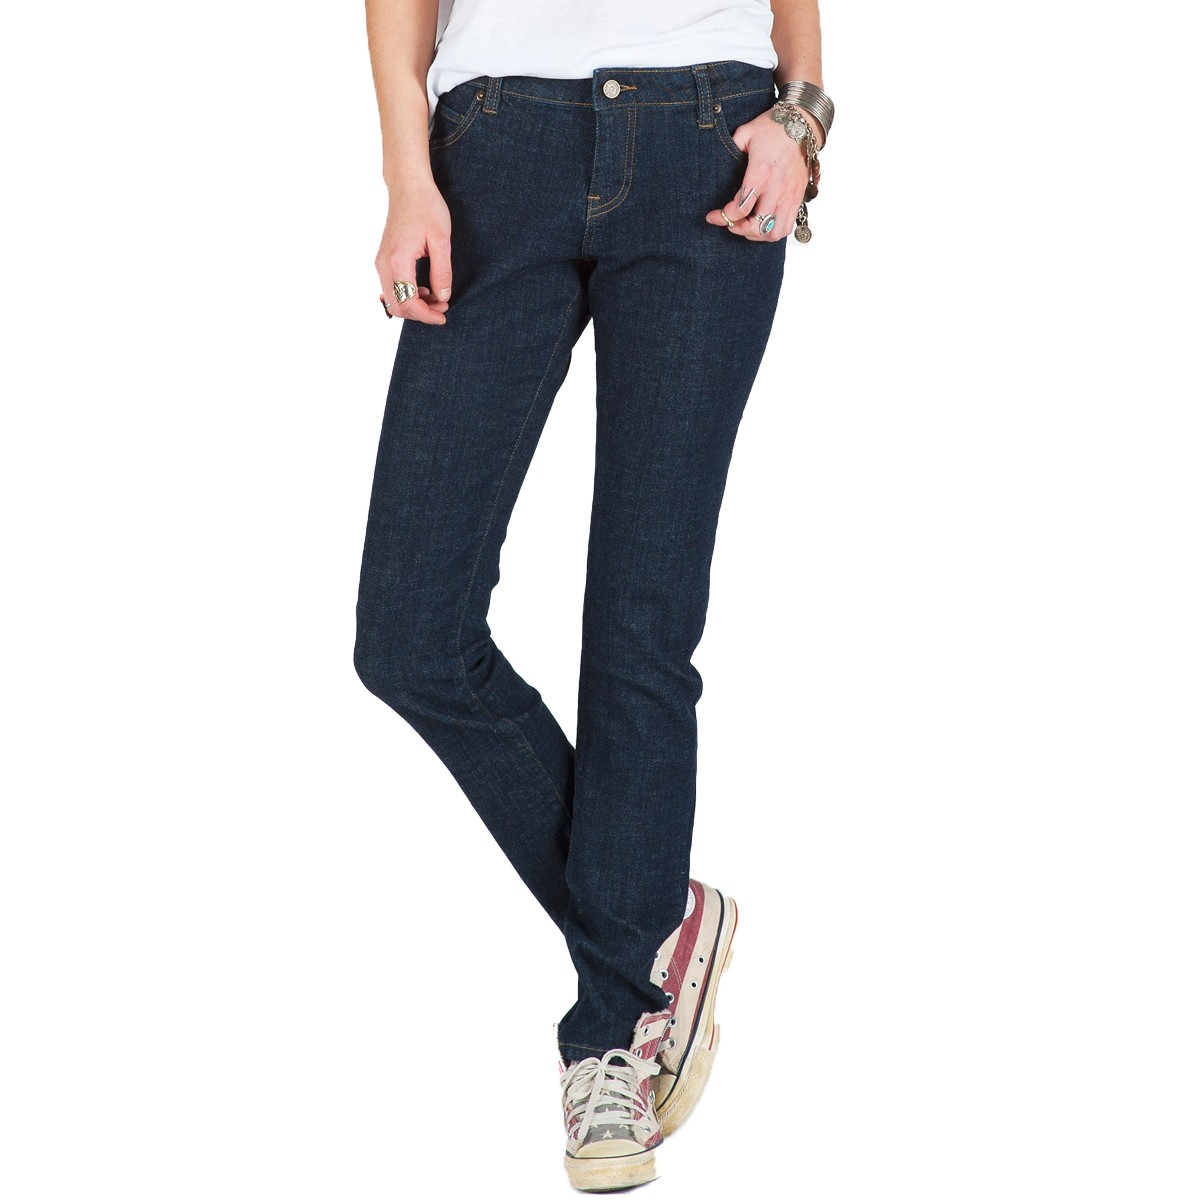 Volcom Super Stoned Skinny Jeans - Rinse